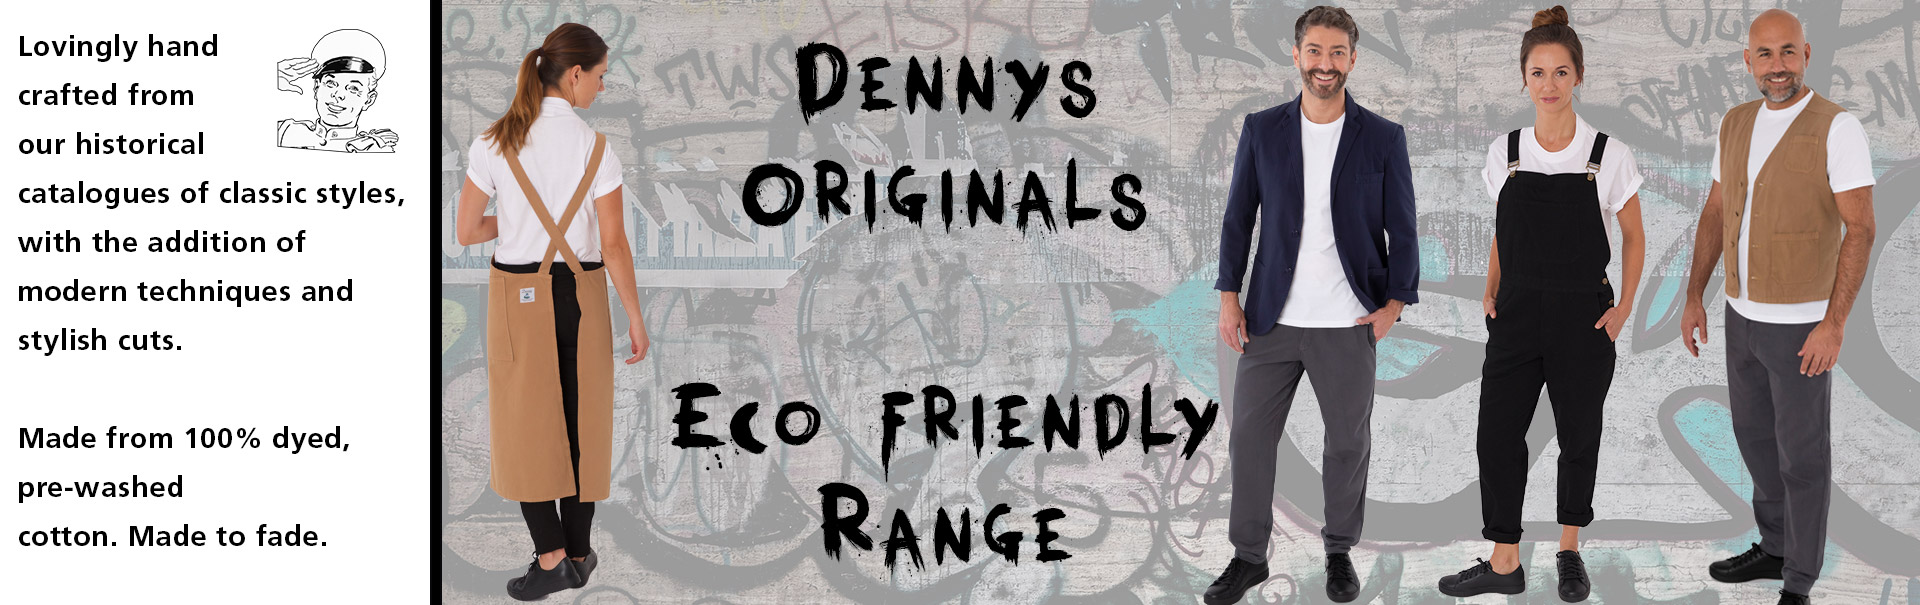 Dennys Originals range